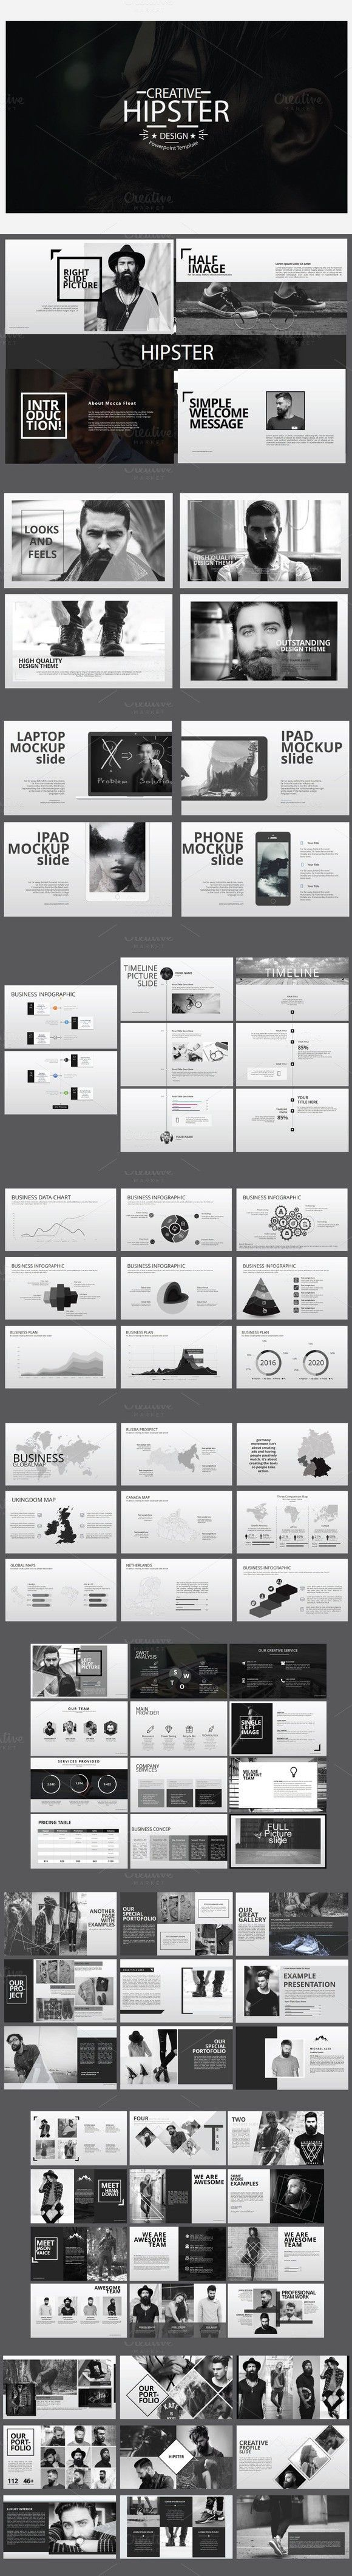 Hipster Business Template. Presentation Templates. $14.00